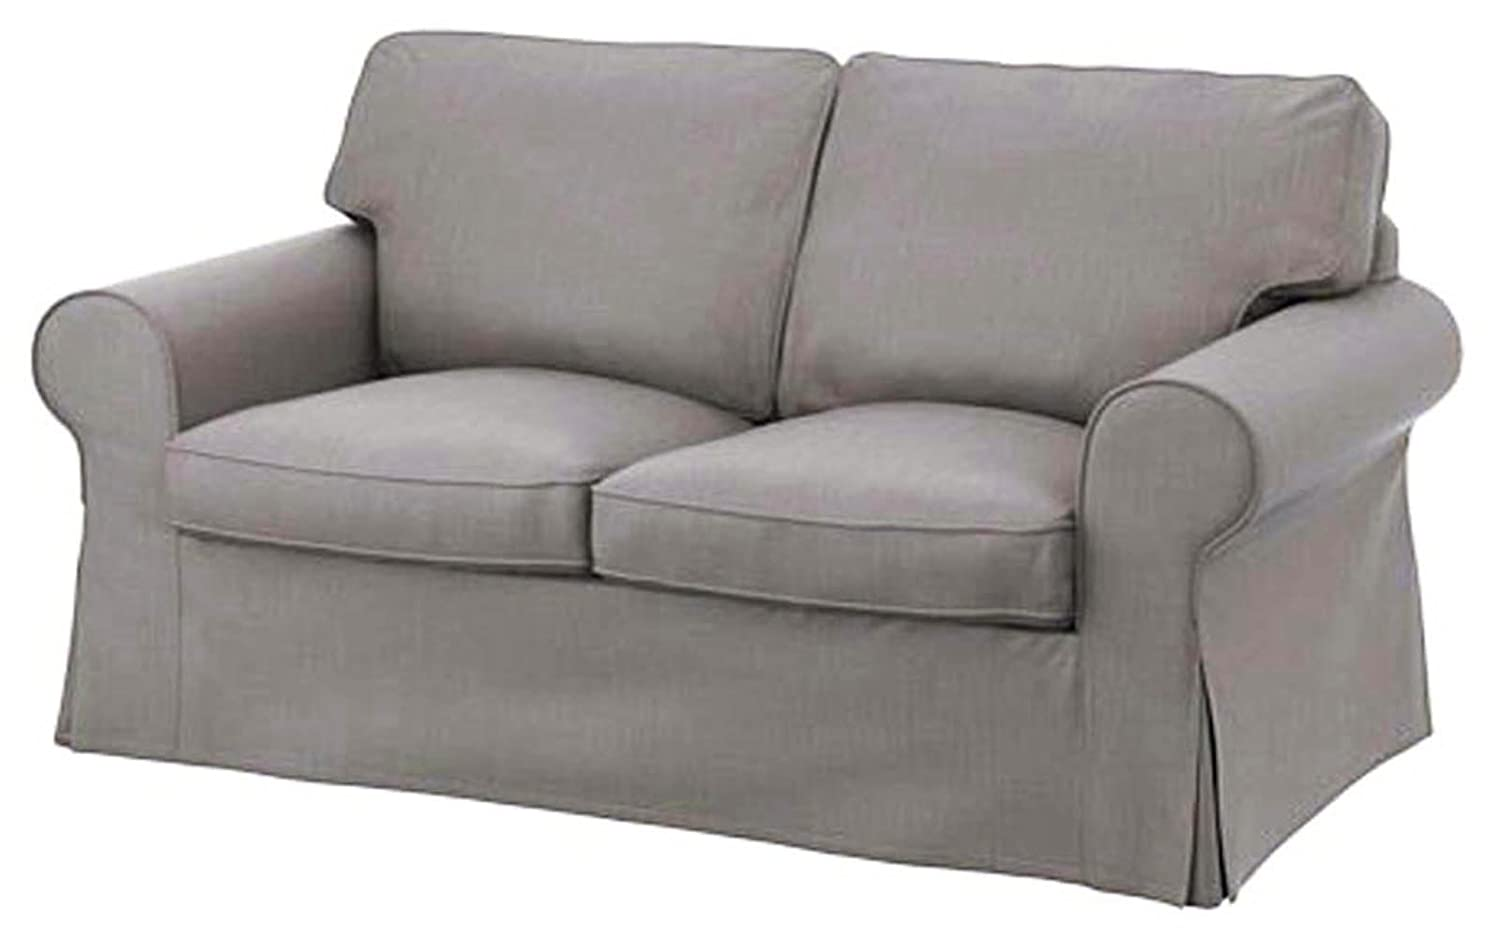 ikea blends ektorp couch covers sectional couches slipcover cotton grey nomad slipcovers en sofa replacement armchair